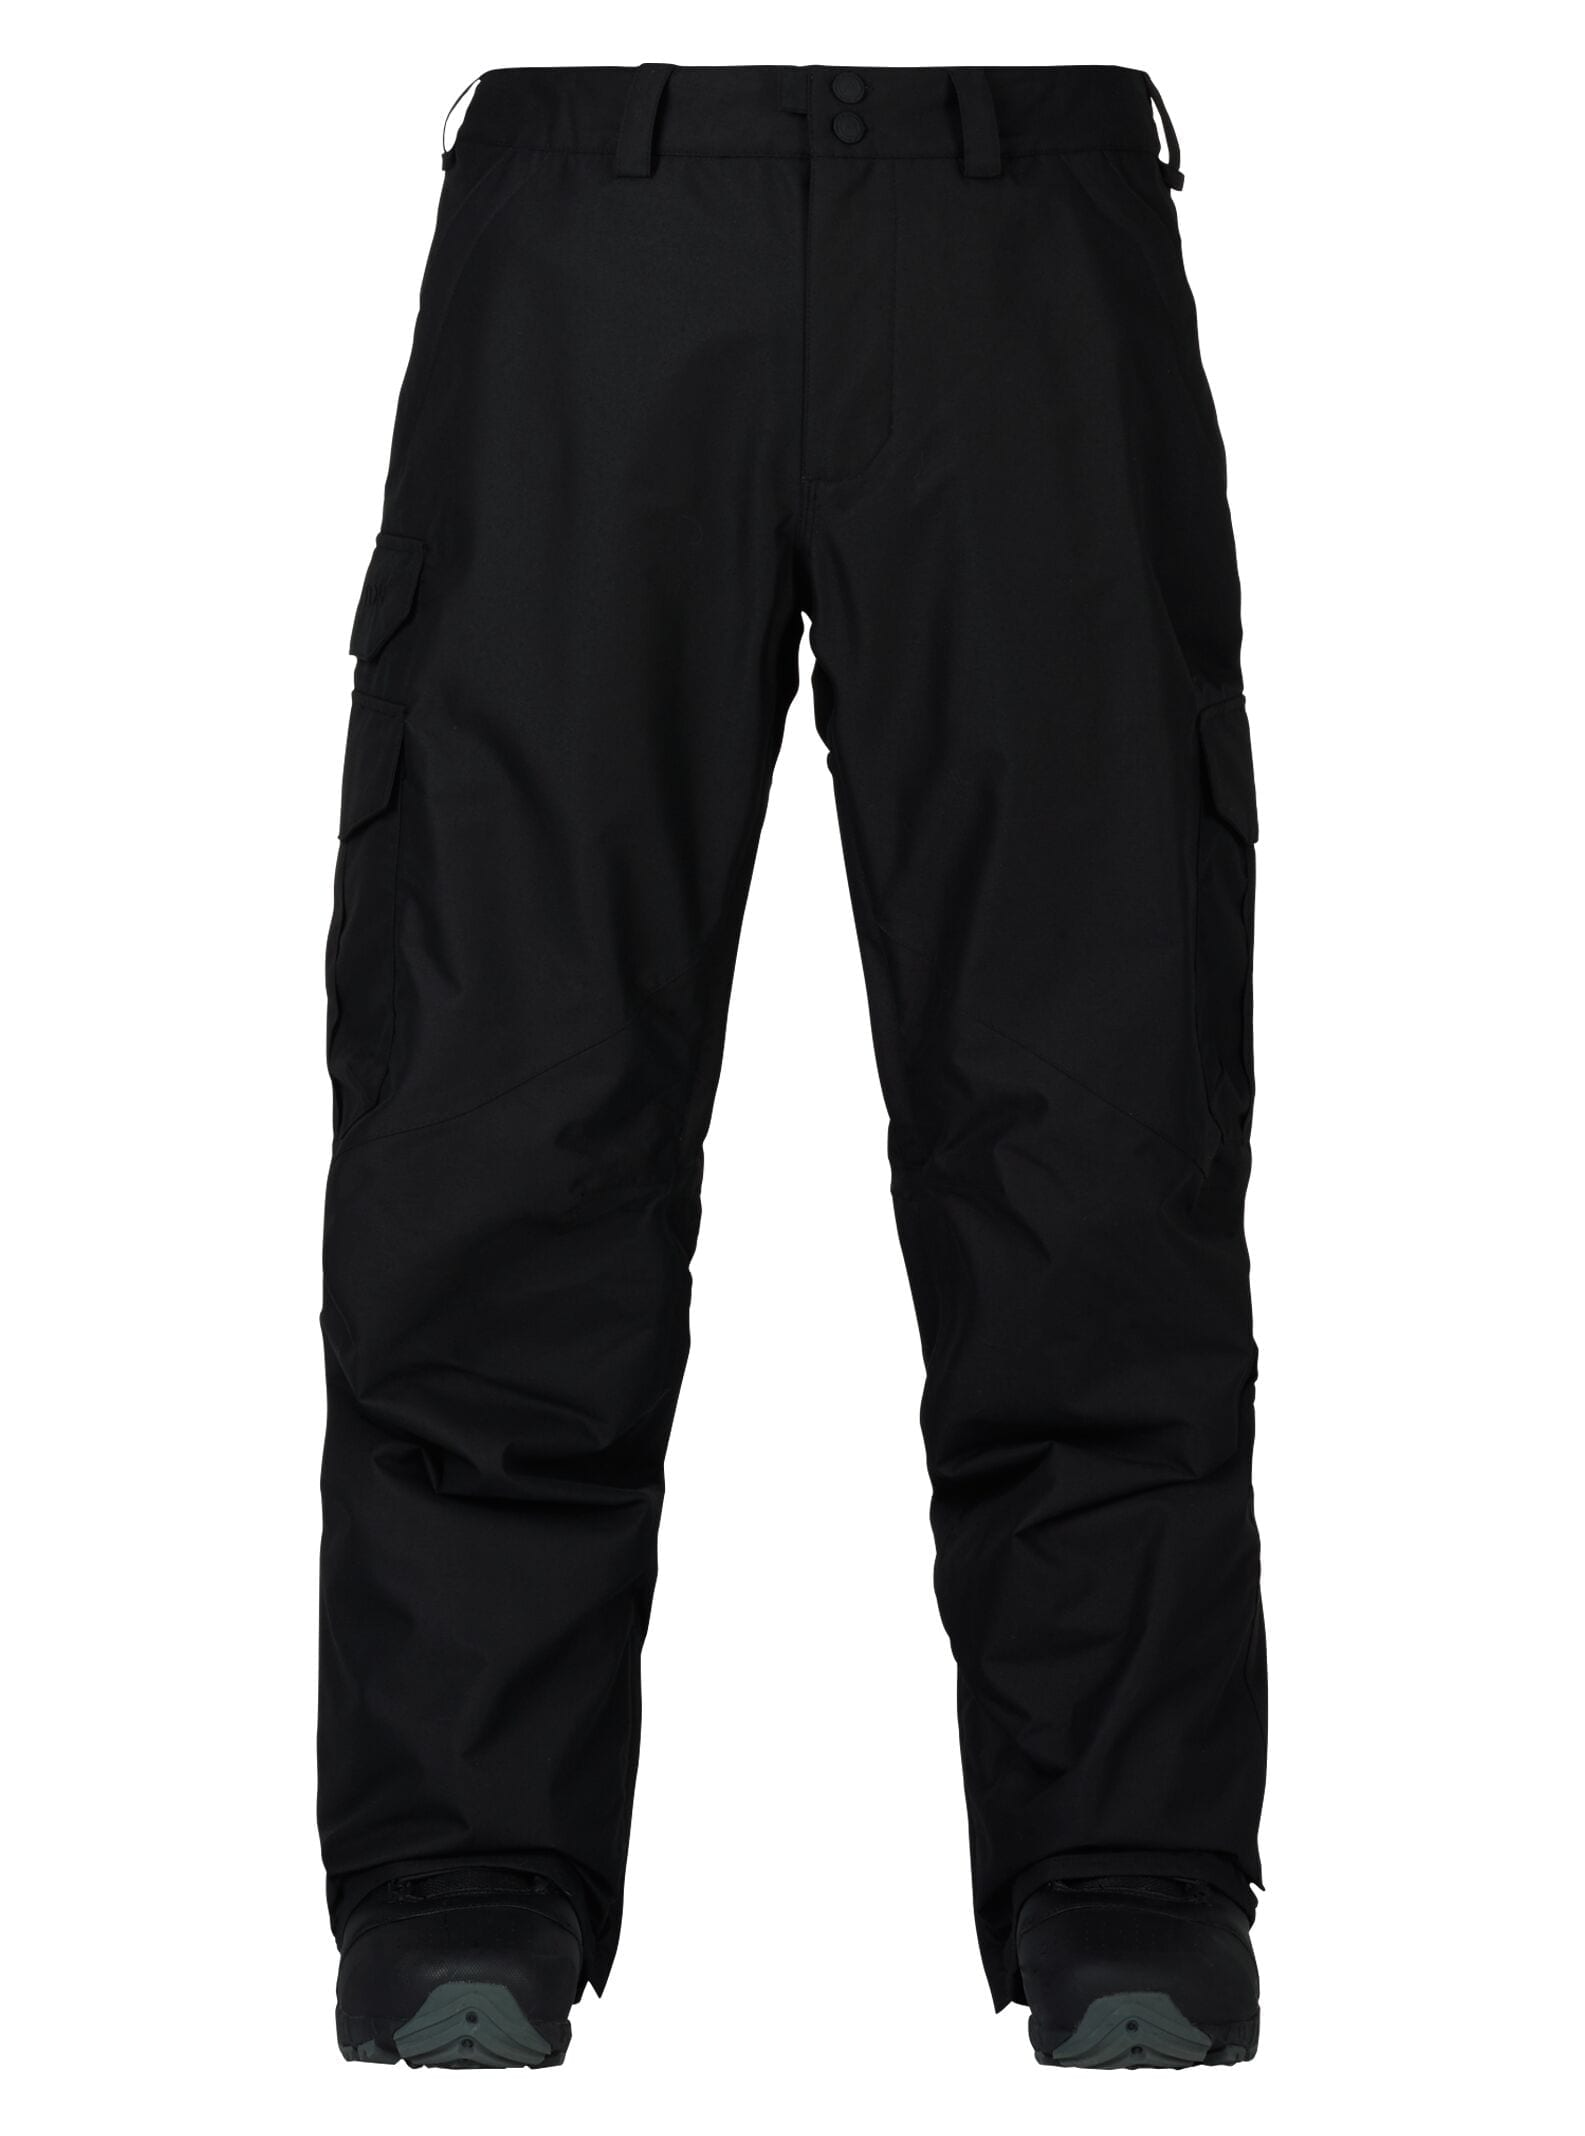 Burton Men_s Cargo Pant, Black, 169.99